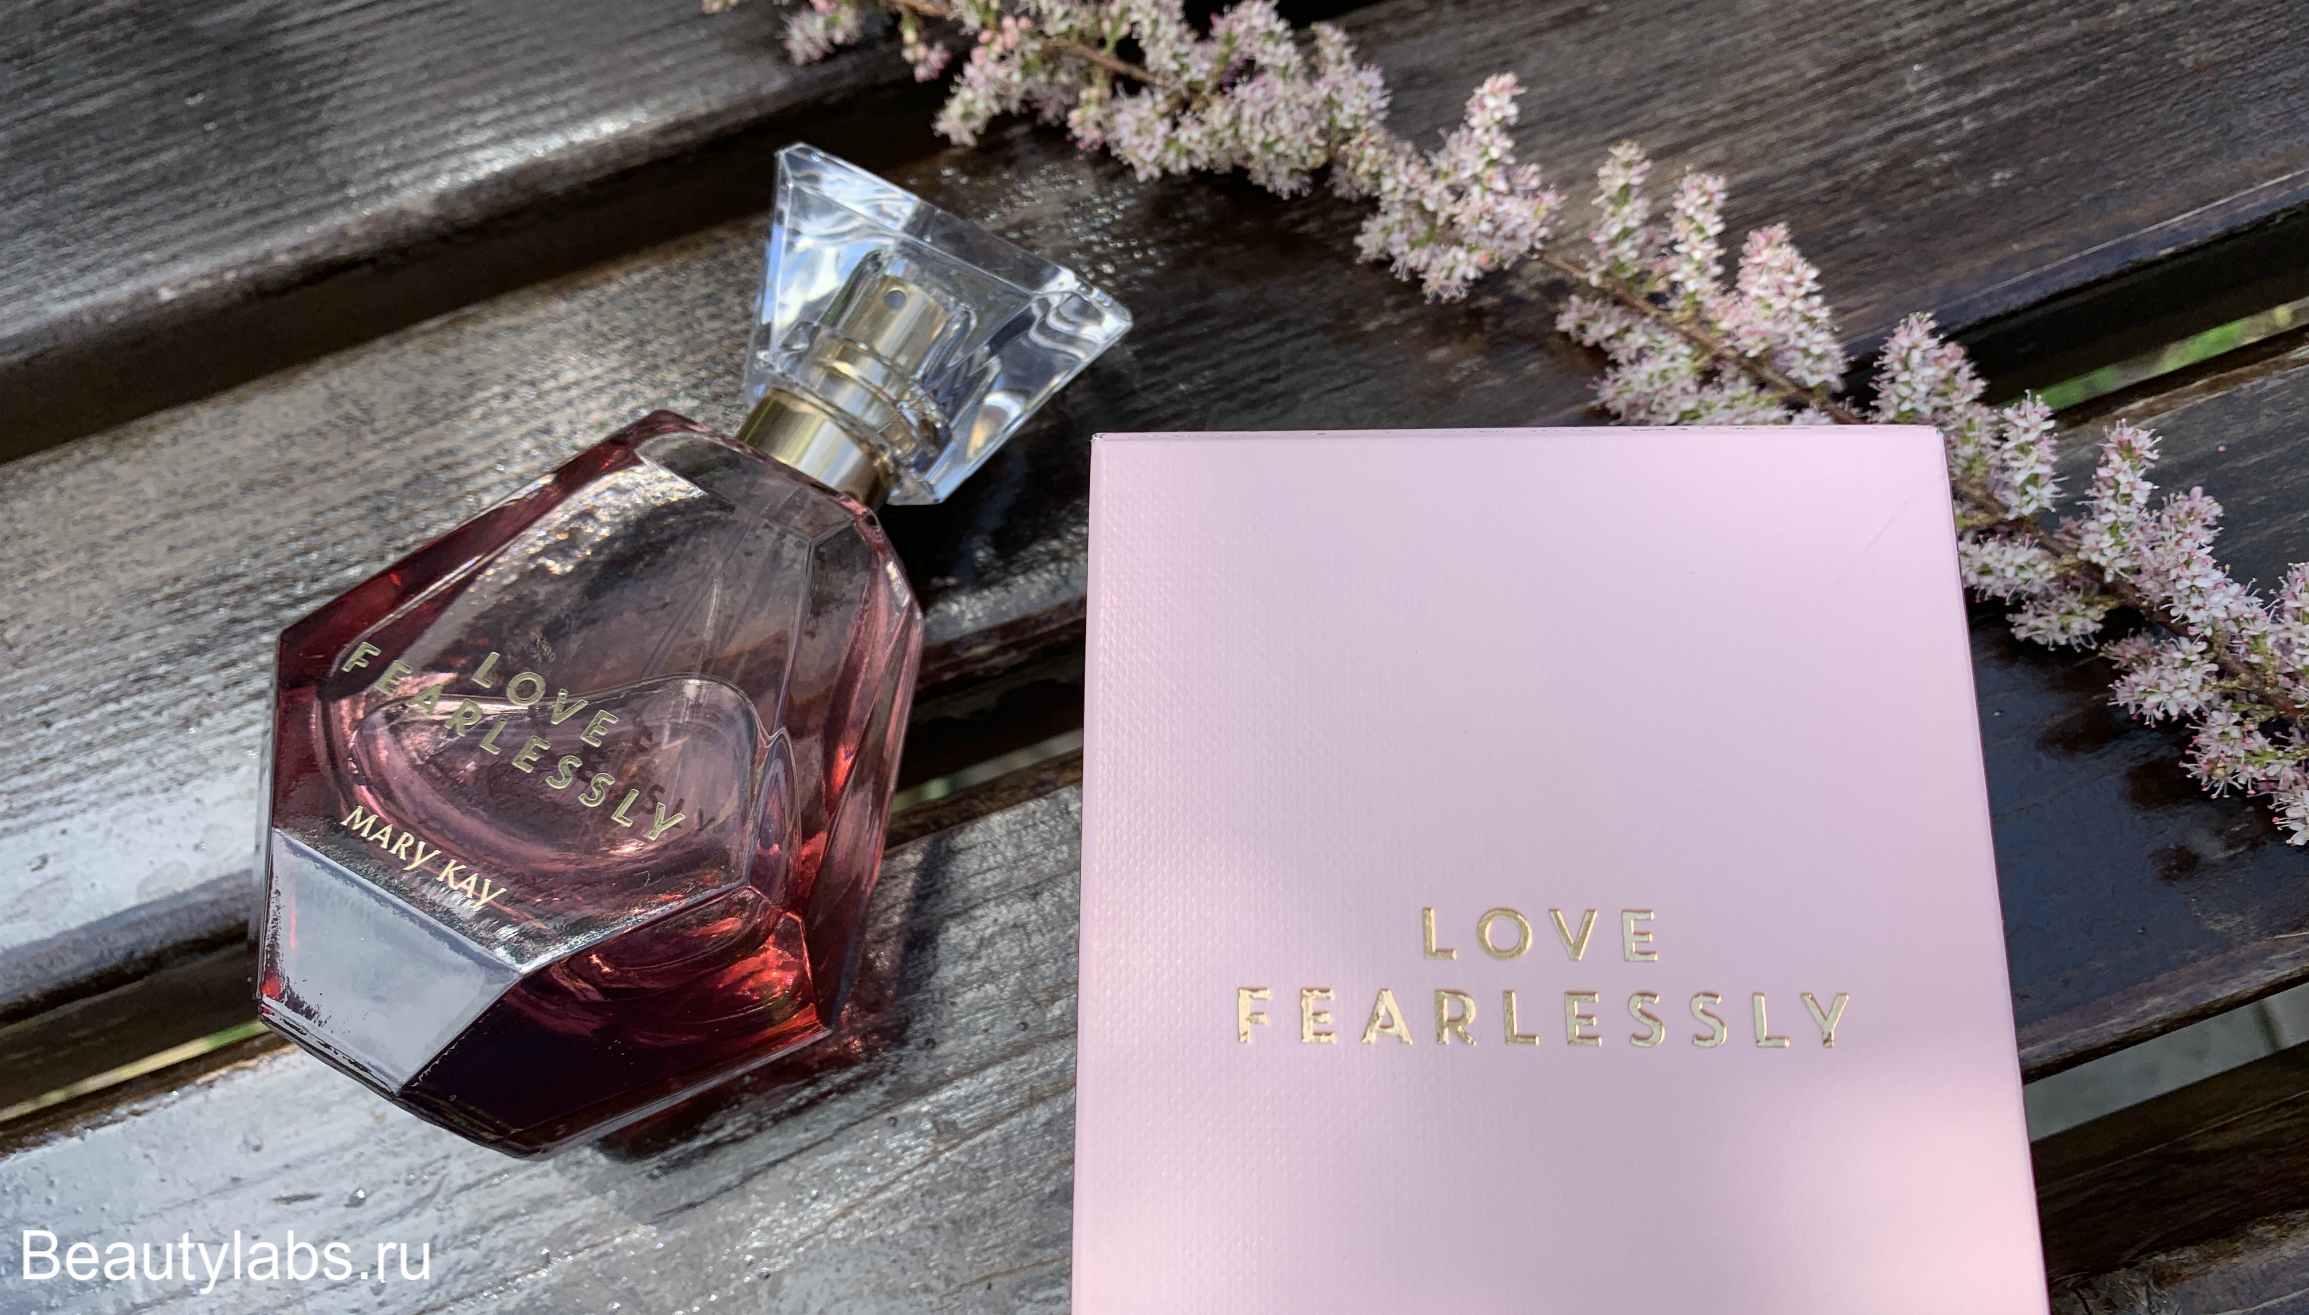 Парфюмерная вода Love Fearlessly Mary Kay